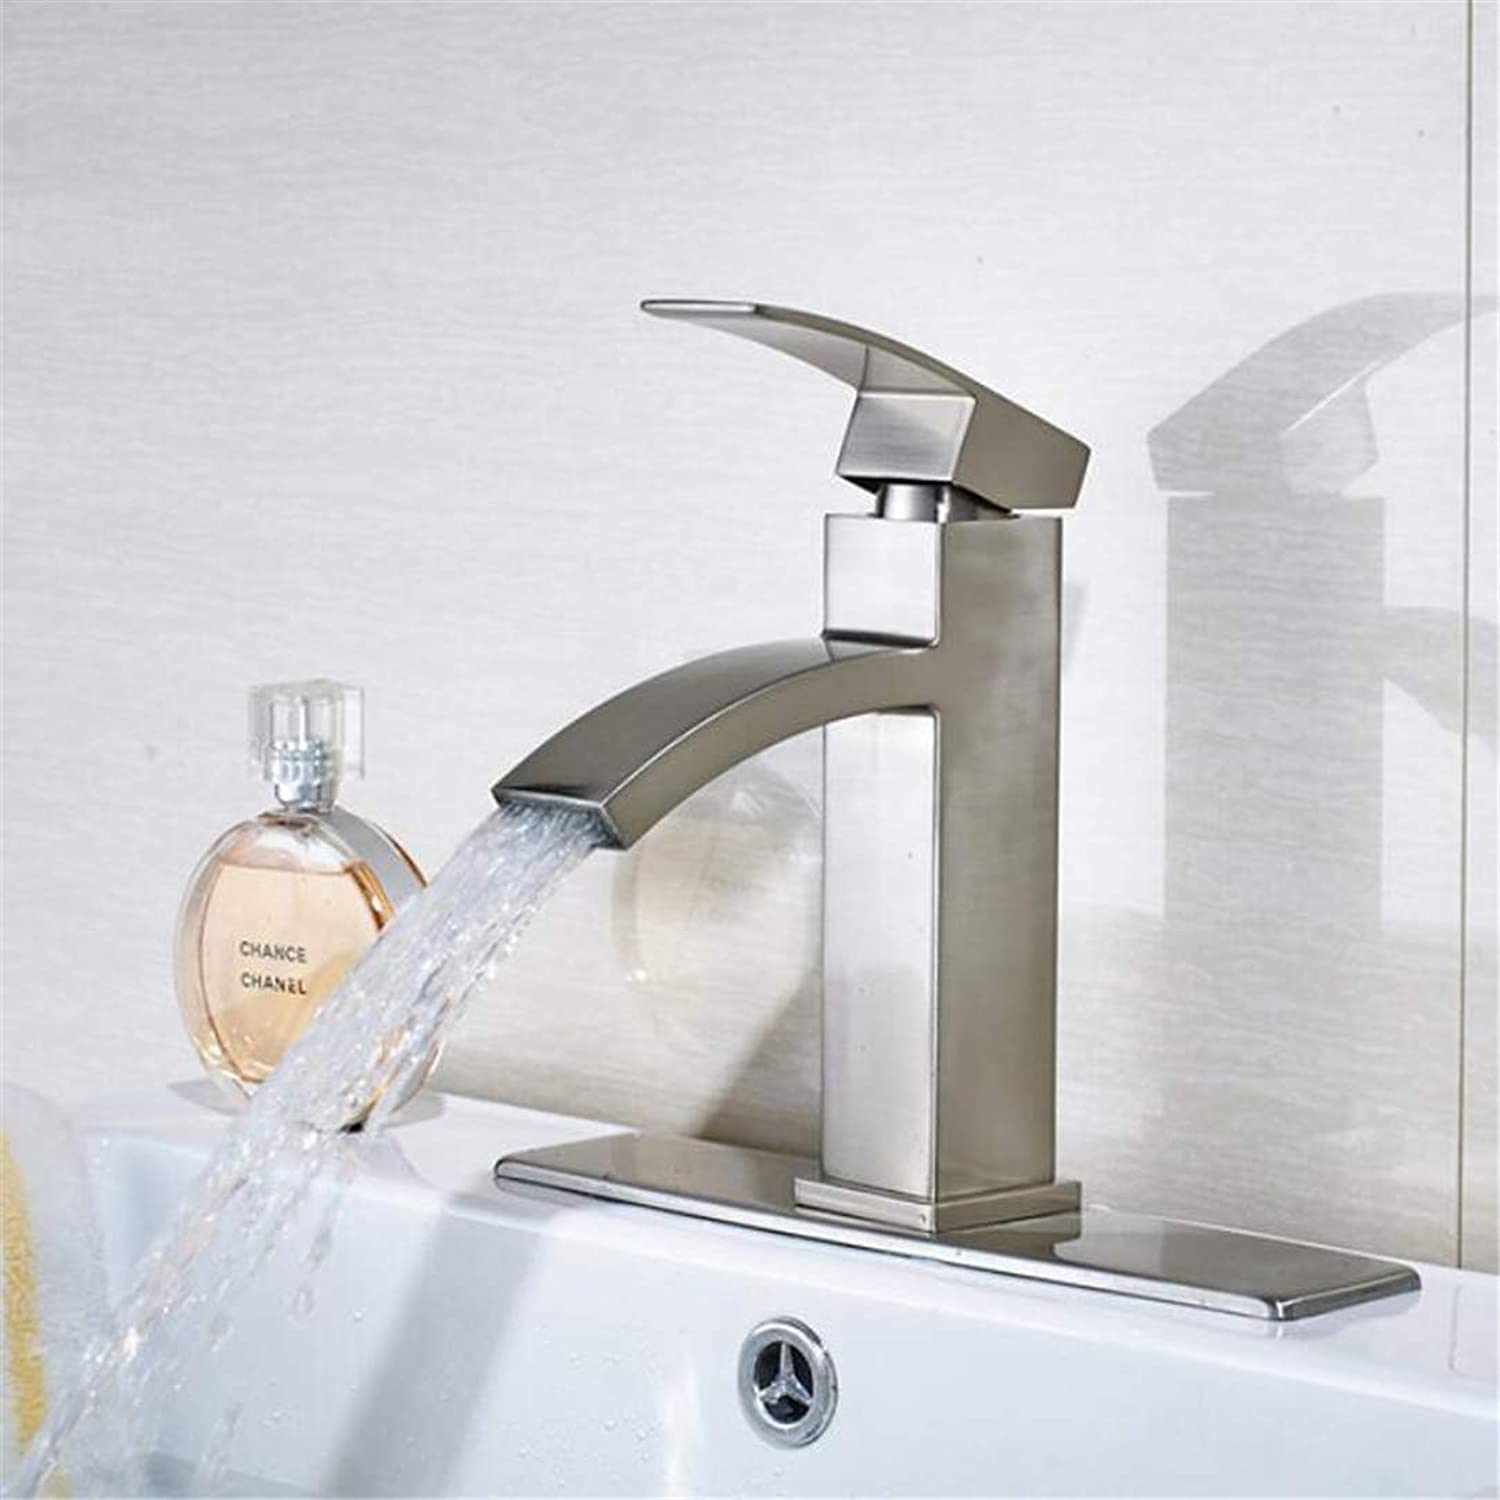 Faucet Washbasin Mixer Nickel Brushed Finished Double Handles Bathroom Sink Faucet Widespread 3Pcs Mixer Tap